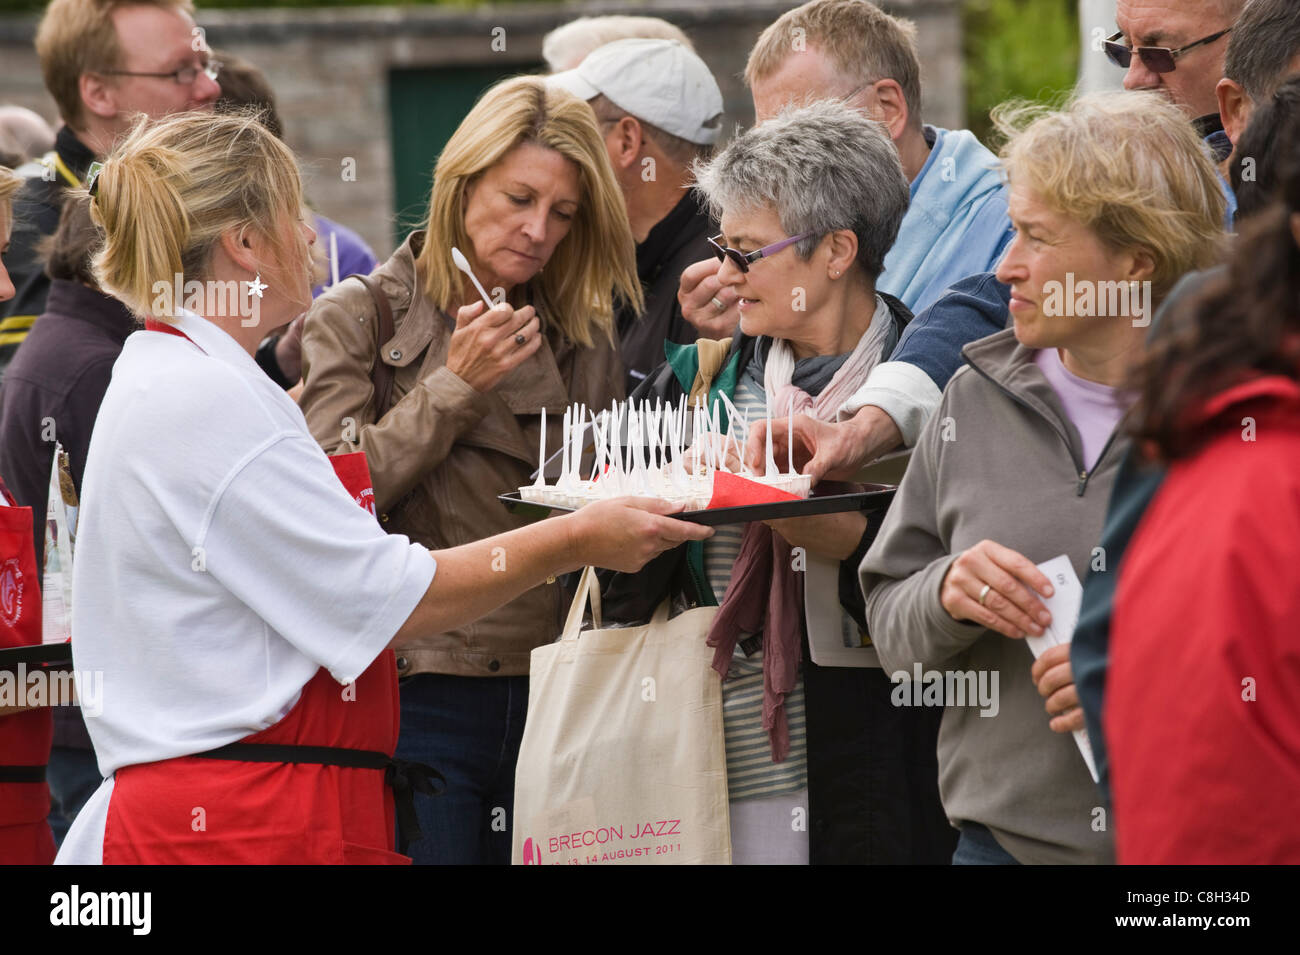 Queuing festivalgoers being offered samples of local food at